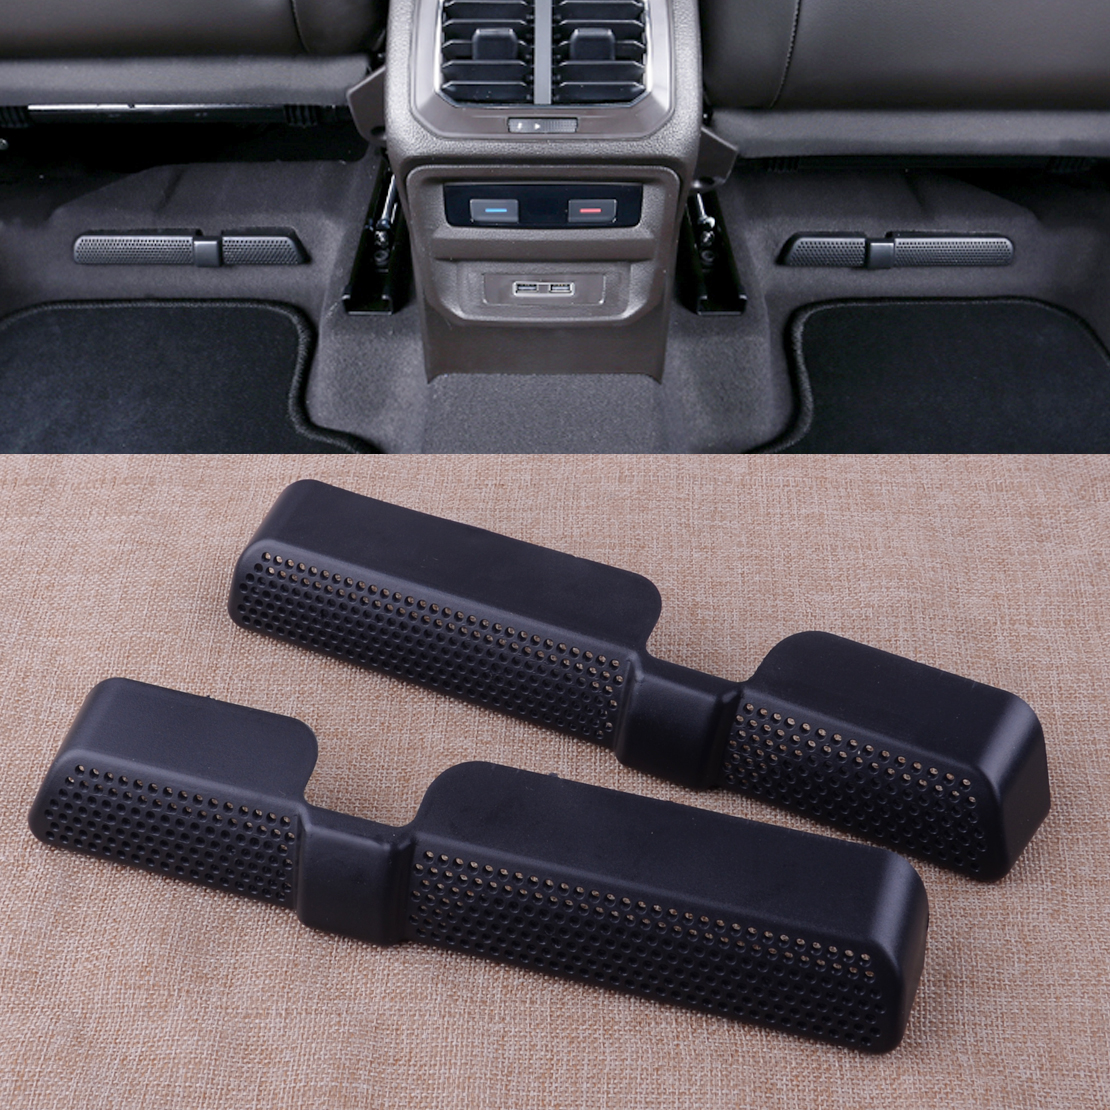 DWCX 2pcs Black Rear Seat Air Condition Vent Outlet Dust Protector Cover Trim Fit For VW Tiguan 2017 2018 2019